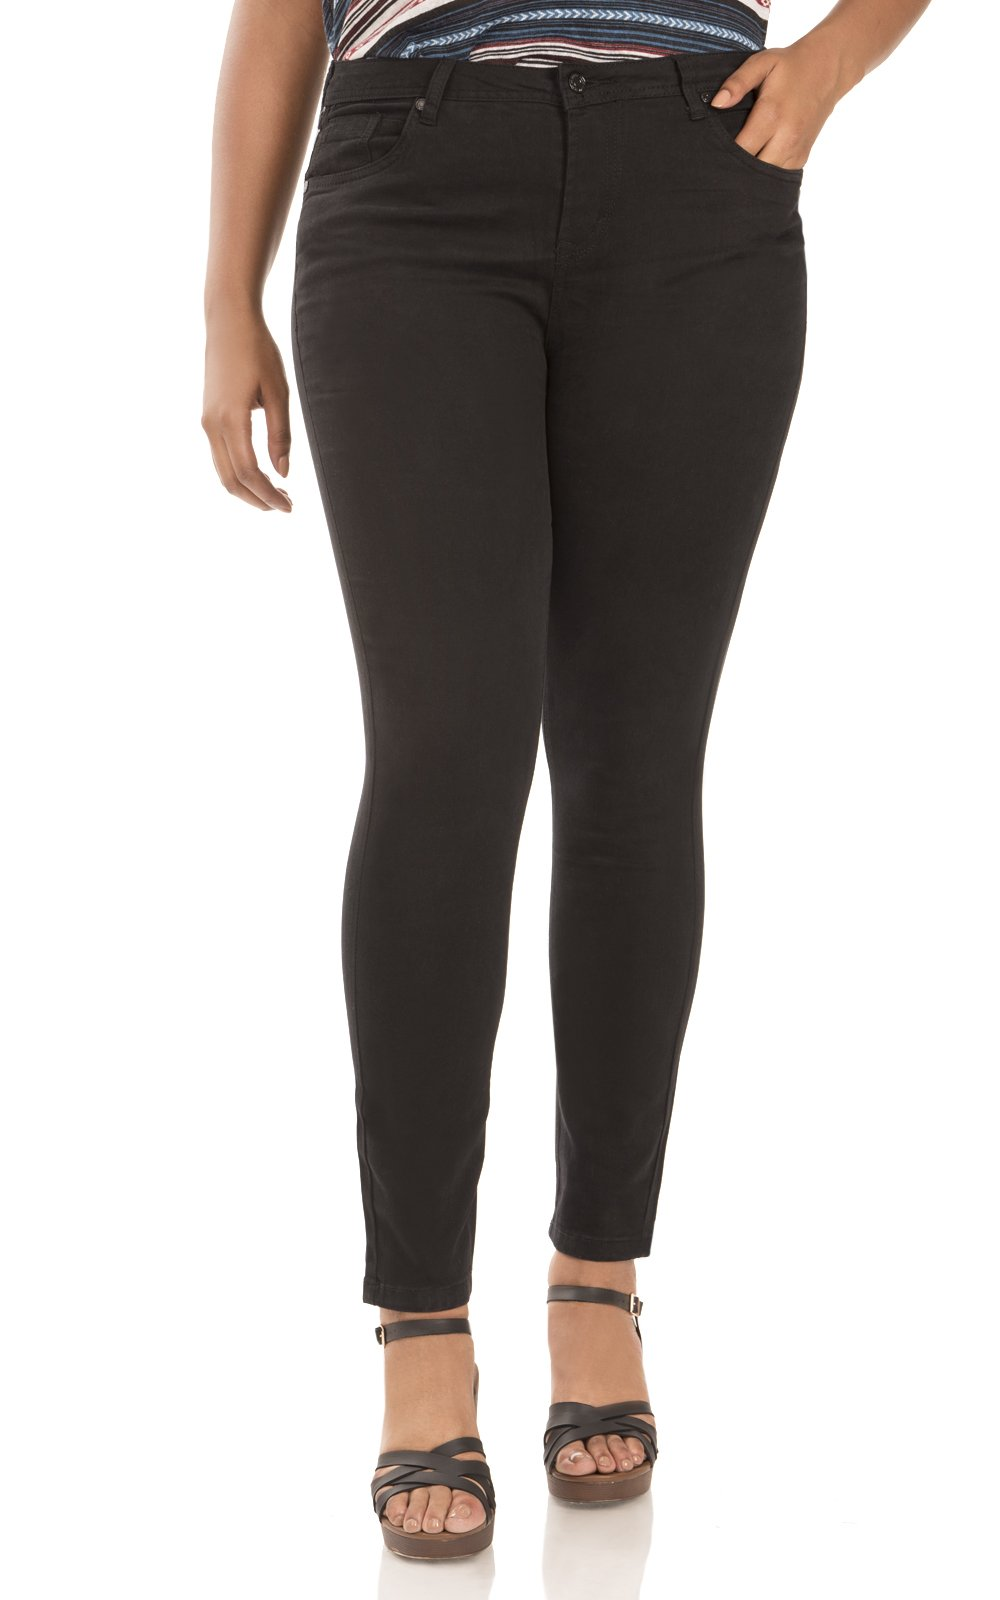 WallFlower Women's Plus Size Ultra Fit Skinny Jegging in Black Size:14